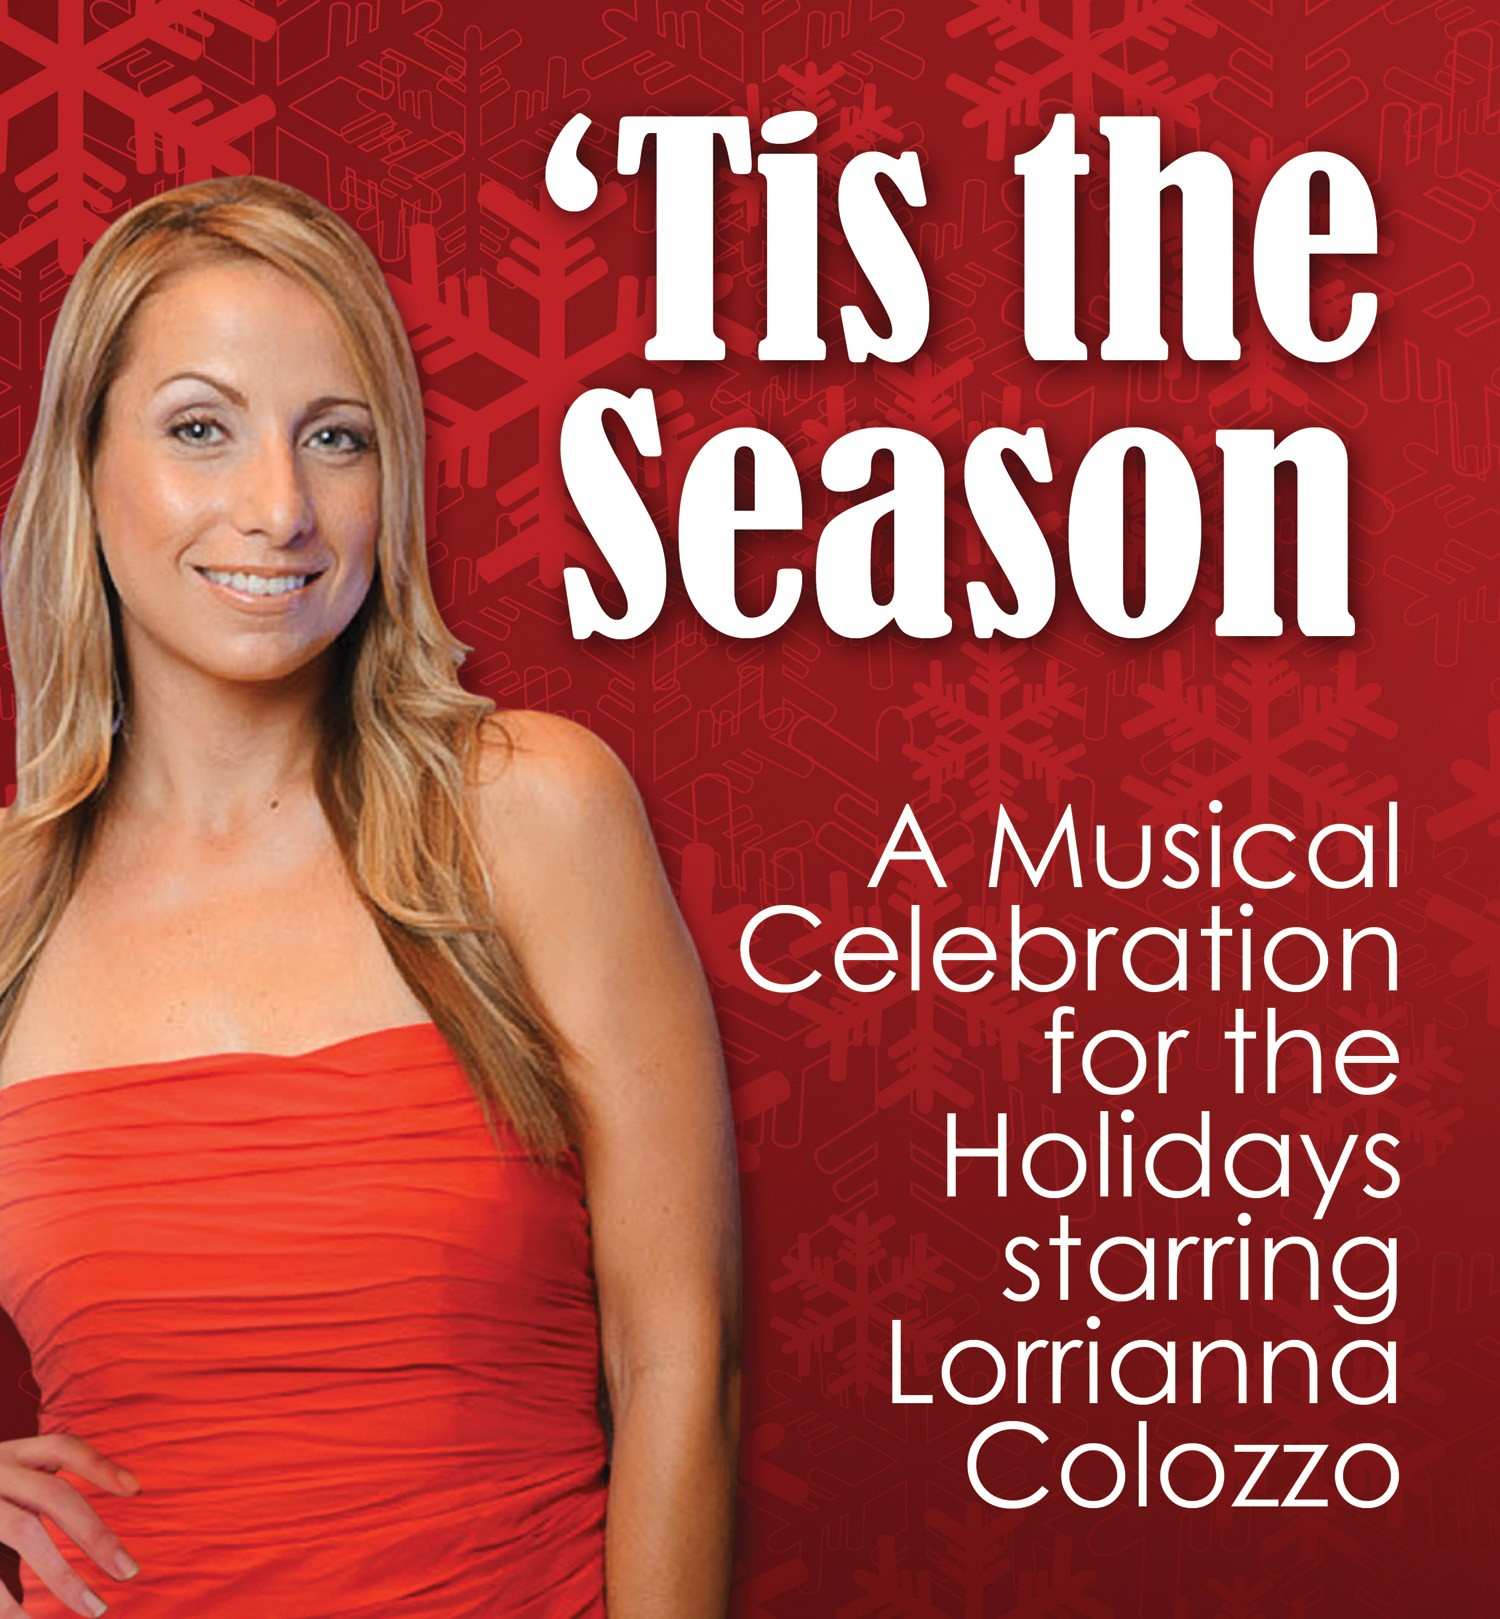 Tis the Season - Musical Celebration for the holidays starring Lorriana Colozzo